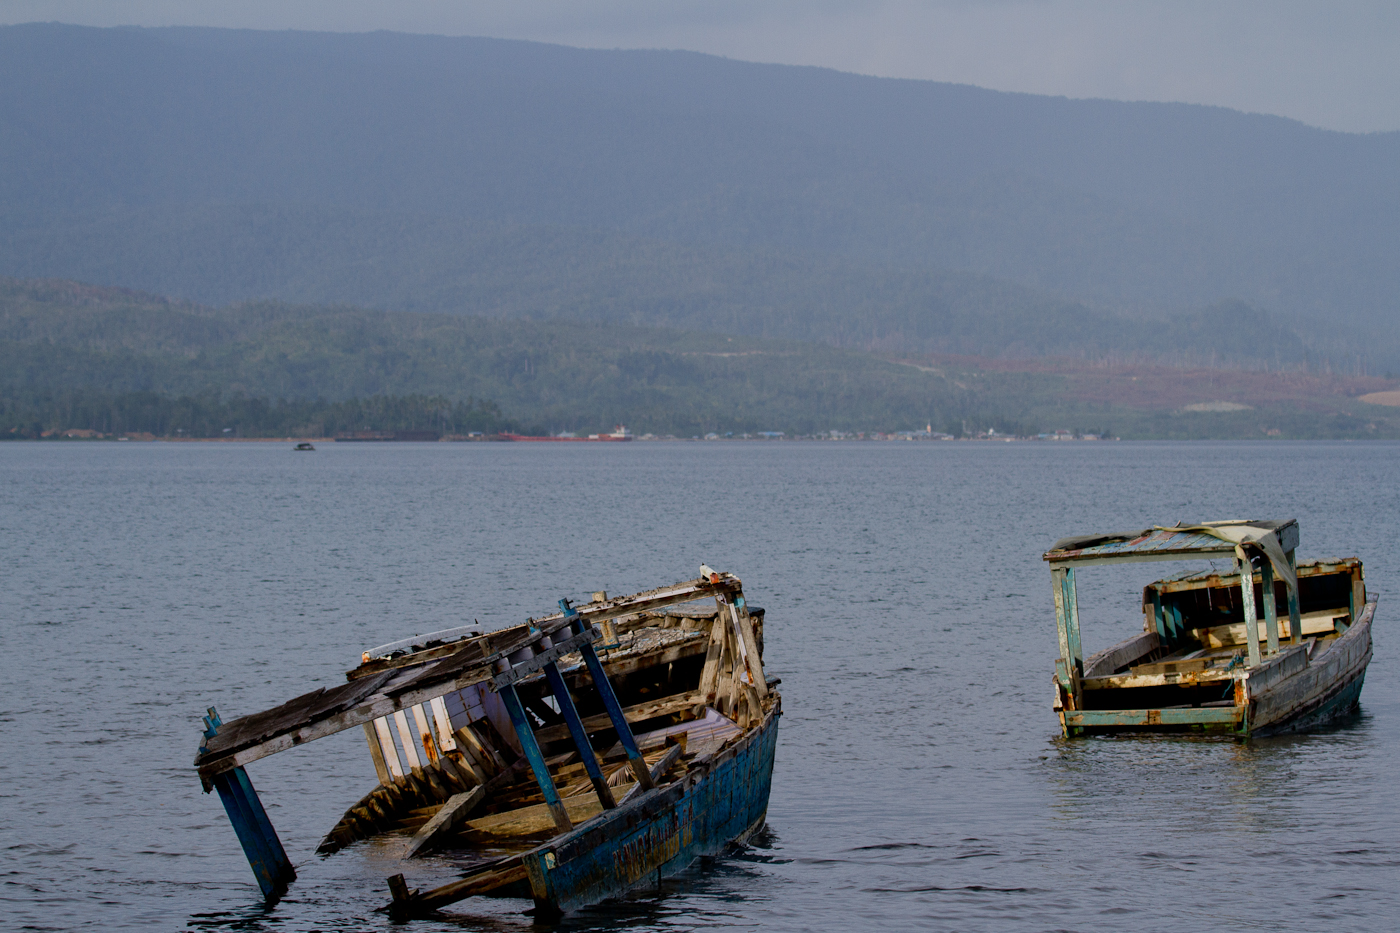 Broken boats in Halmahera